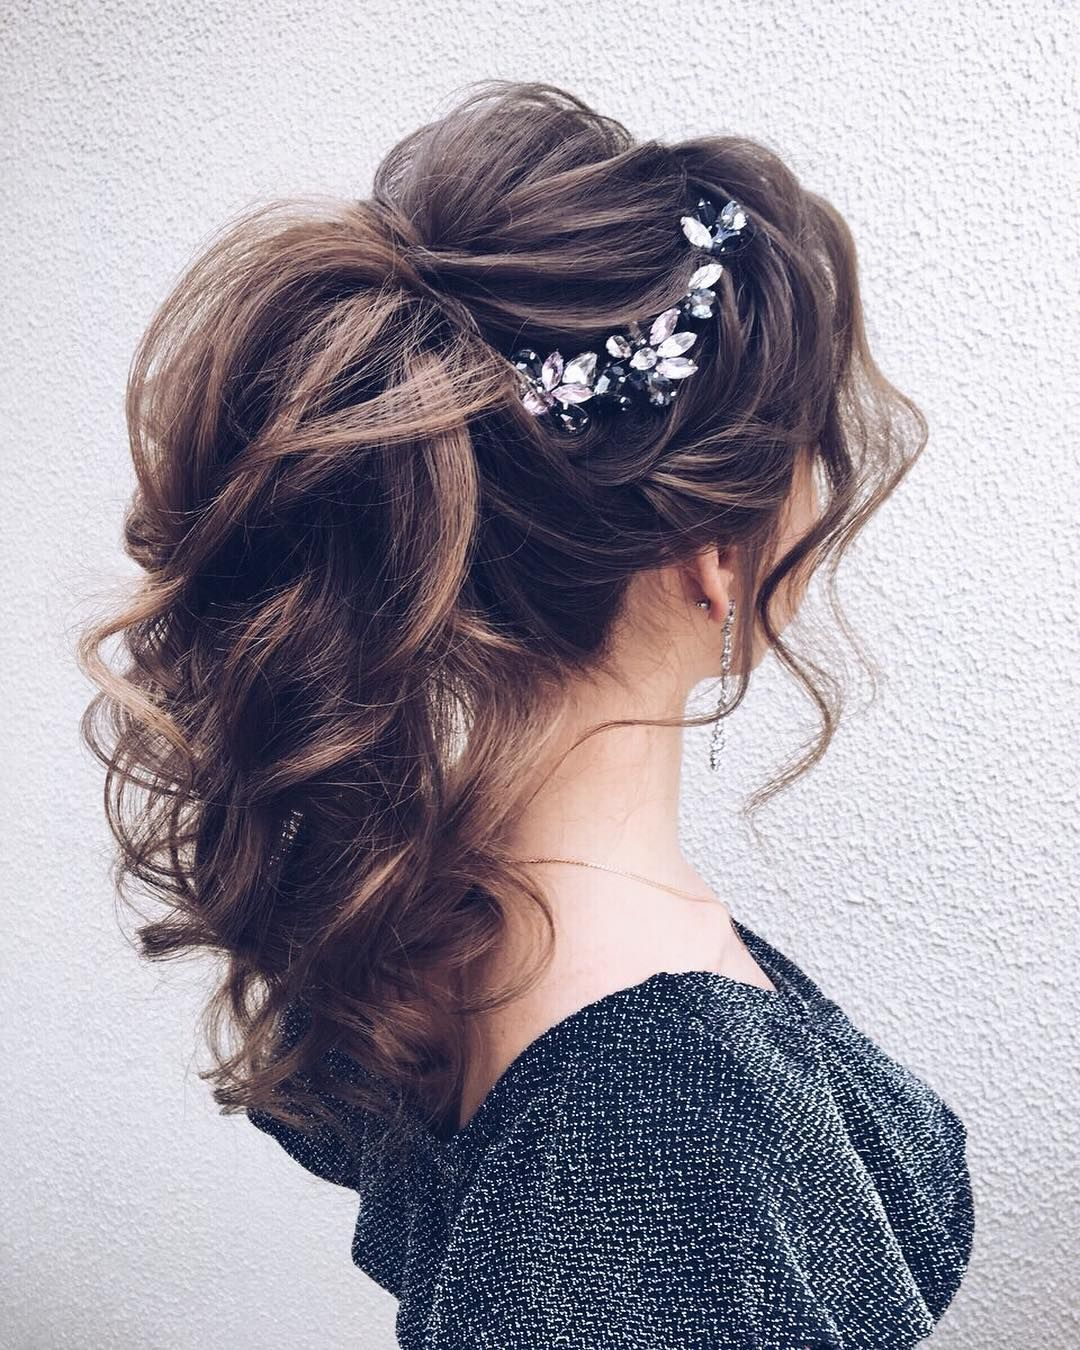 """These gorgeous ponytail hairstyles are perfect for wedding and day out, modern but at the same time elegant, a ponytail with wispy bangs in the perfect choice for trendy and chic brides. From easy high ,puff ponytails to low ponytails… <a class=""""pintag"""" href=""""/explore/OlderWomensHairstylesLong/"""" title=""""#OlderWomensHairstylesLong explore Pinterest"""">#OlderWomensHairstylesLong</a><p><a href=""""http://www.homeinteriordesign.org/2018/02/short-guide-to-interior-decoration.html"""">Short guide to interior decoration</a></p>"""